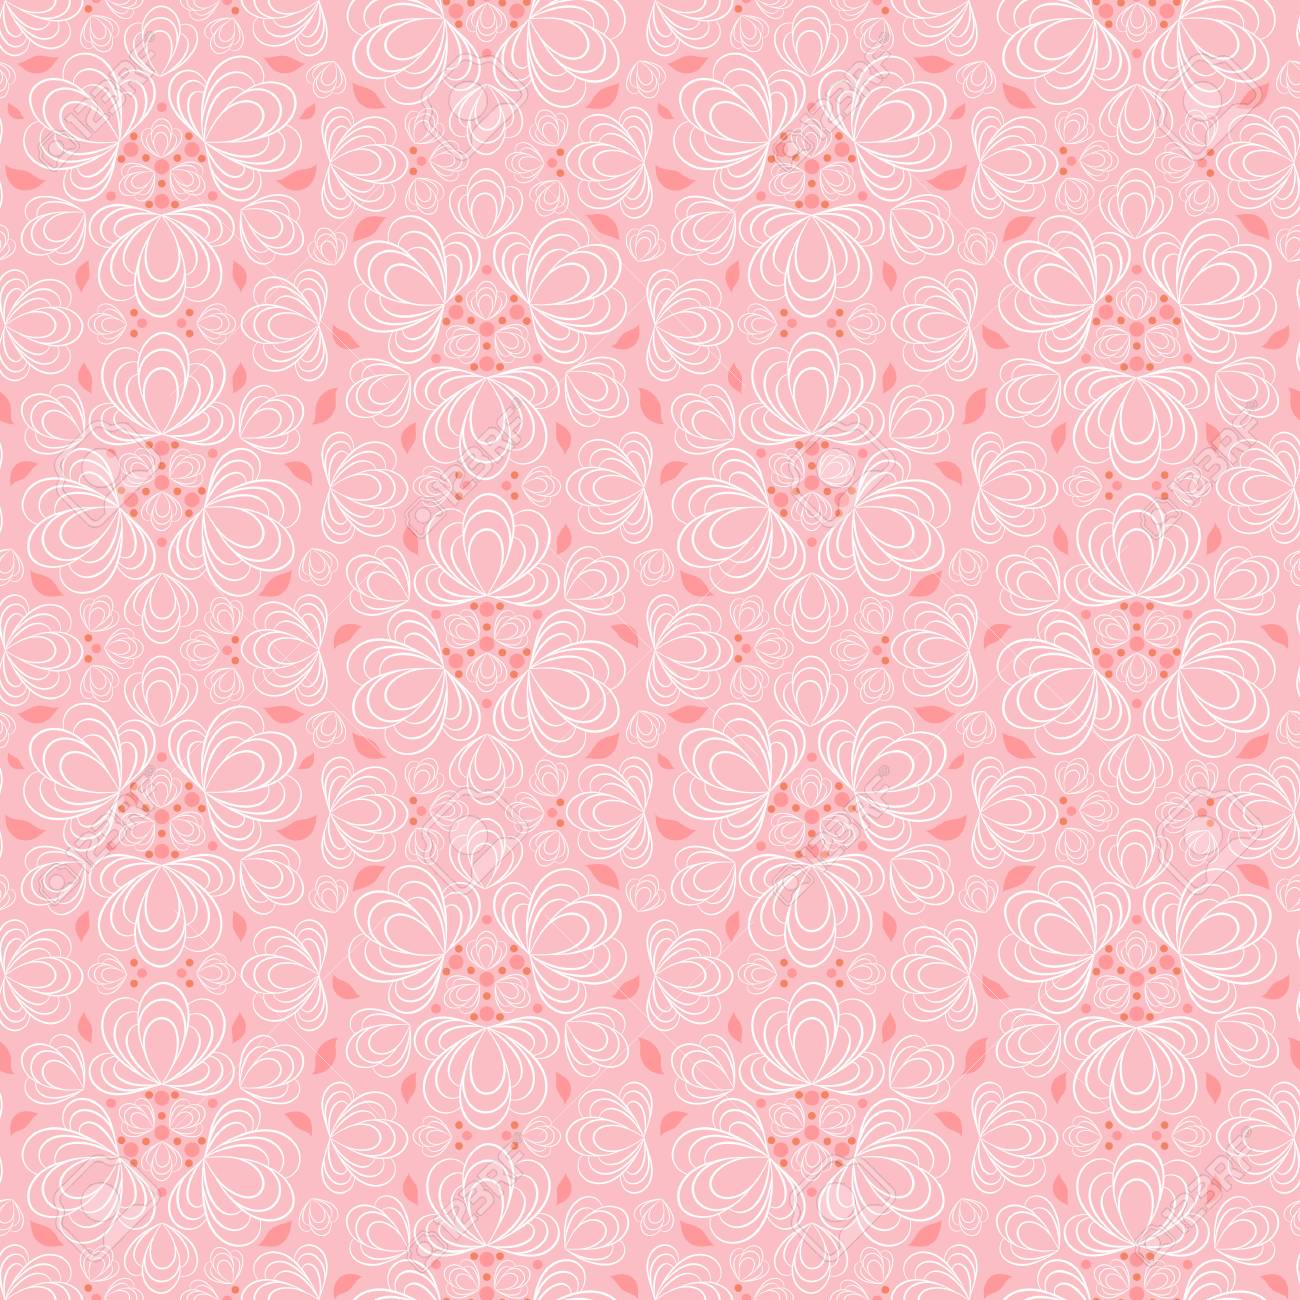 Seamless Vector Floral Pattern With Abstract Flowers In Monochrome Baby Pink Colors Vintage Background In Baroque Style For Fabric Wrapping Or